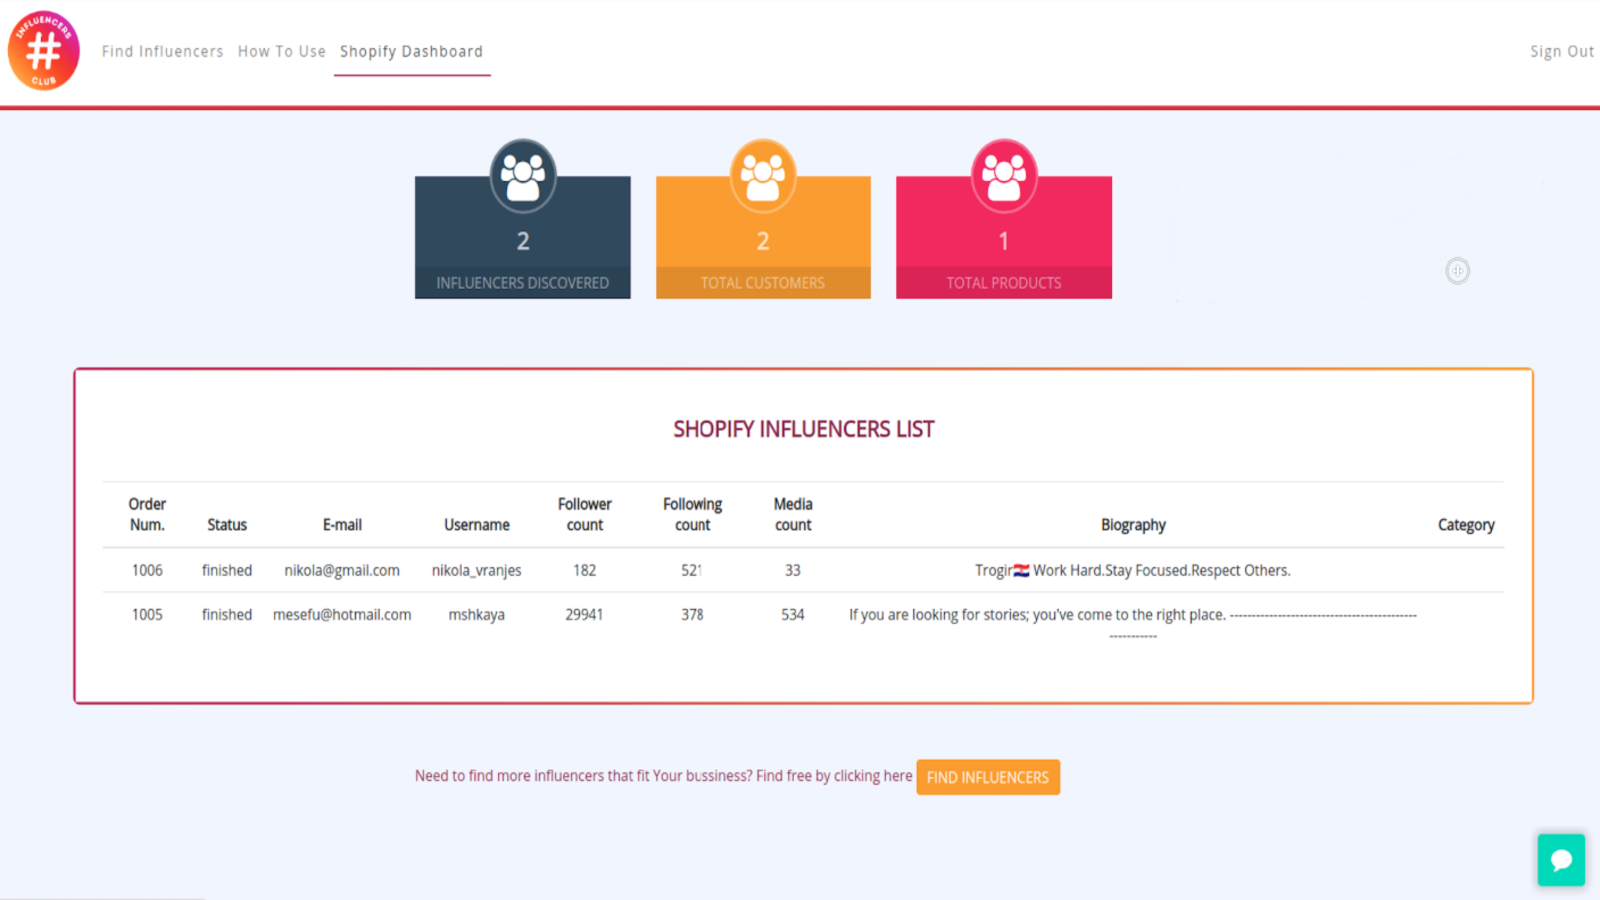 Found influencers will be listed in this dashboard.